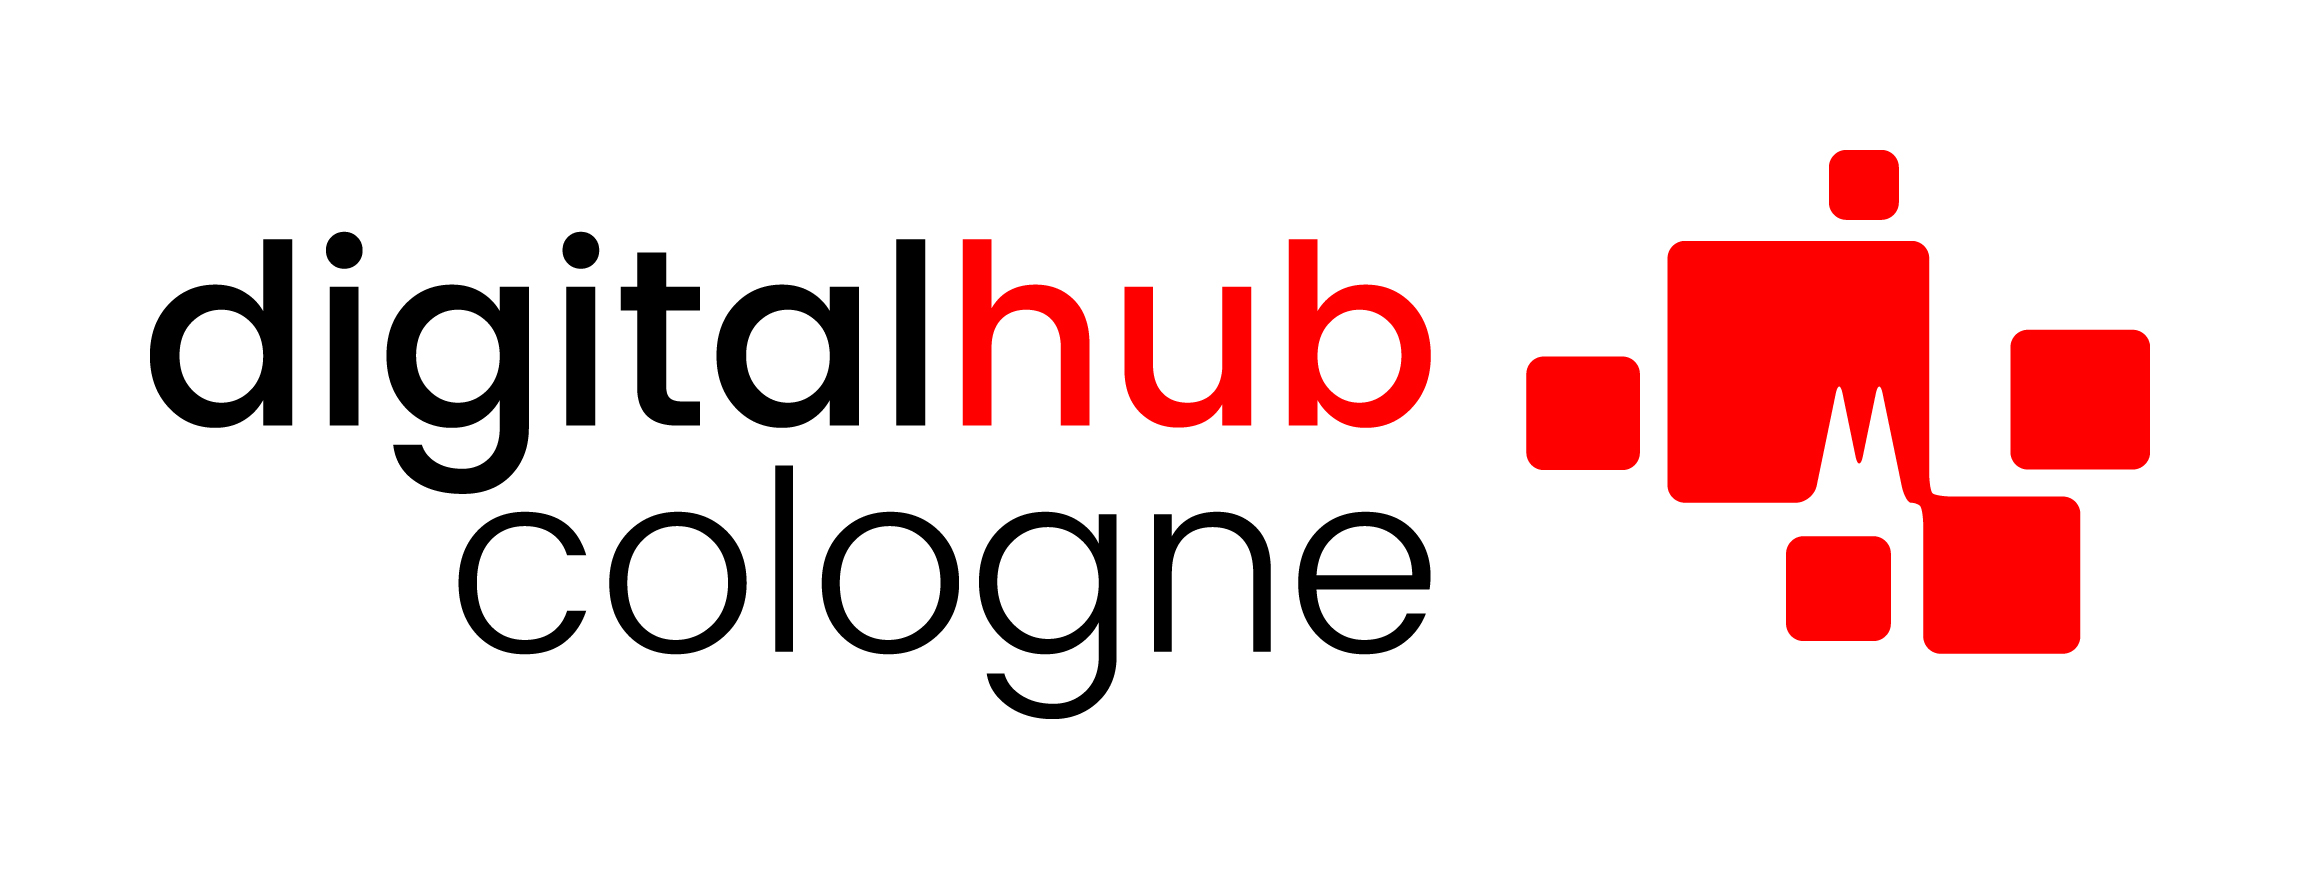 logo digital hub cologne